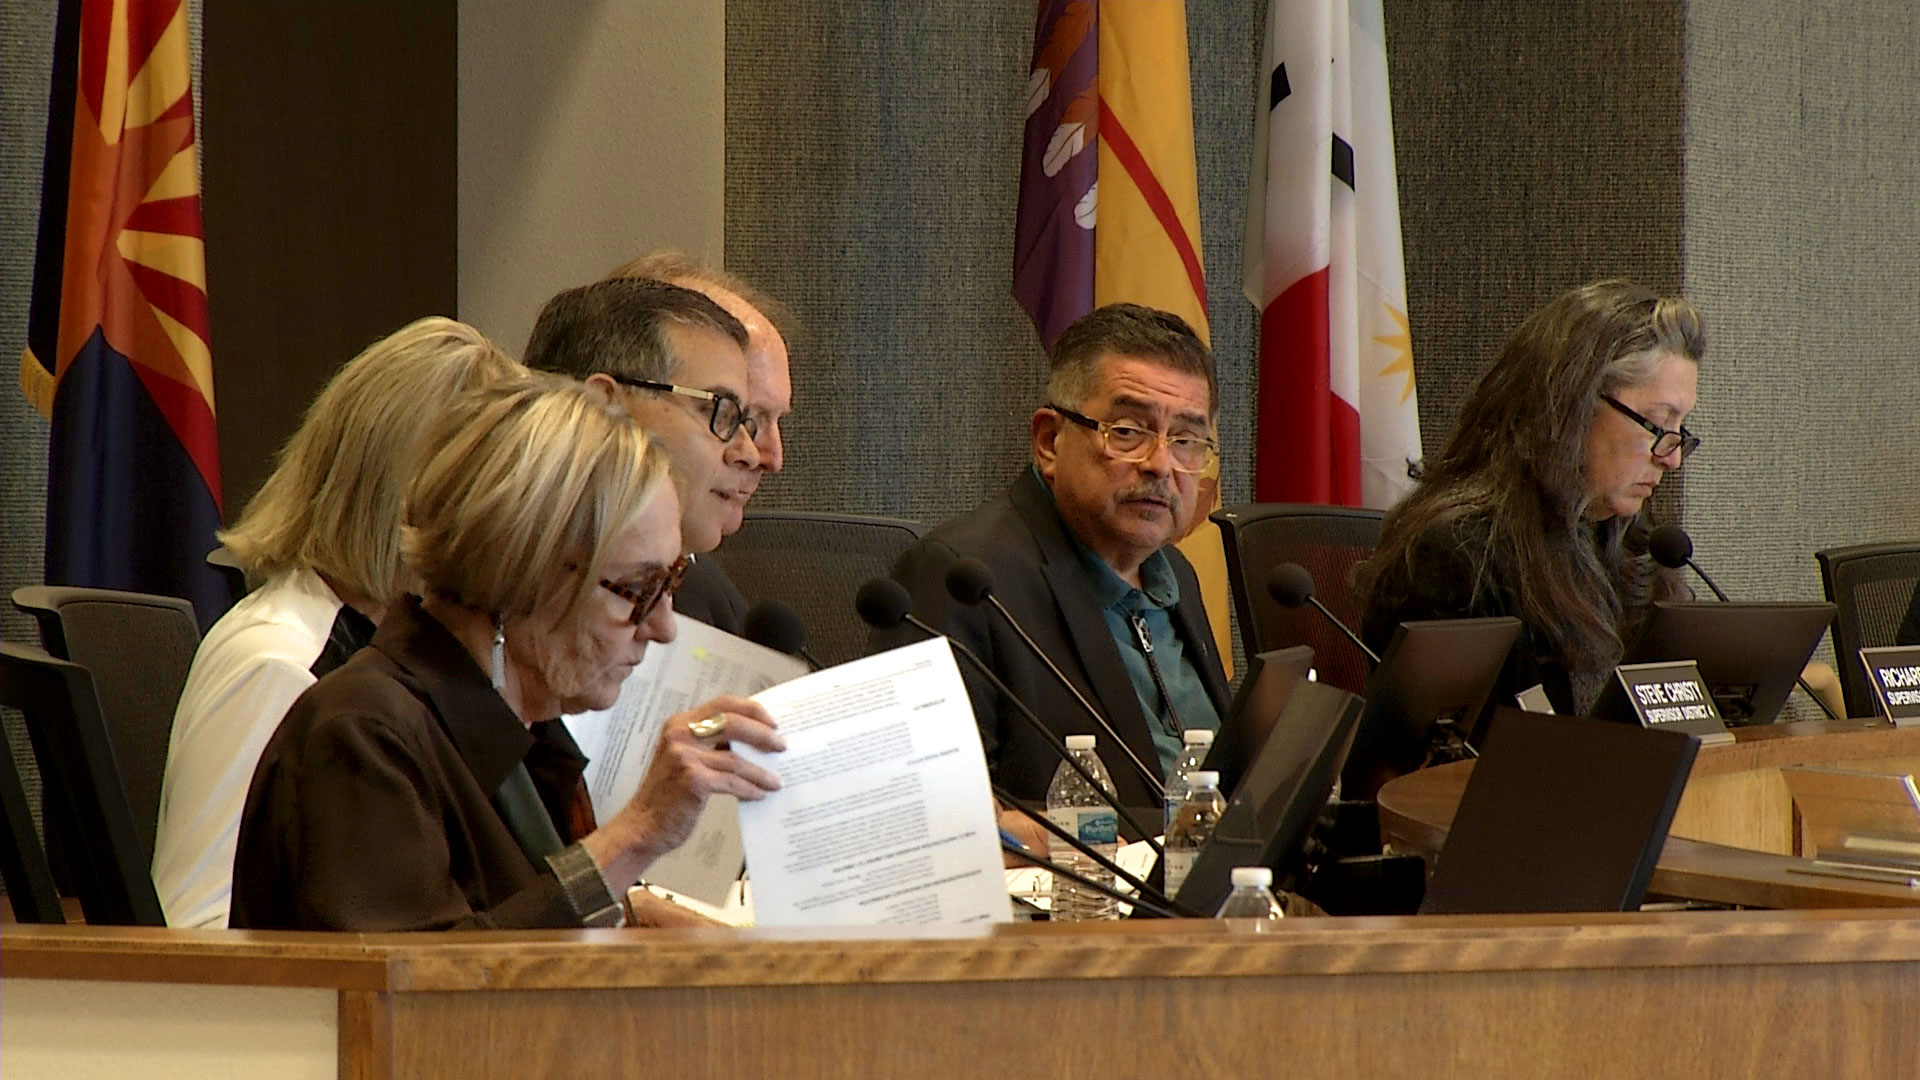 The Pima County Board of Supervisors sit during a meeting on May 7, 2019.